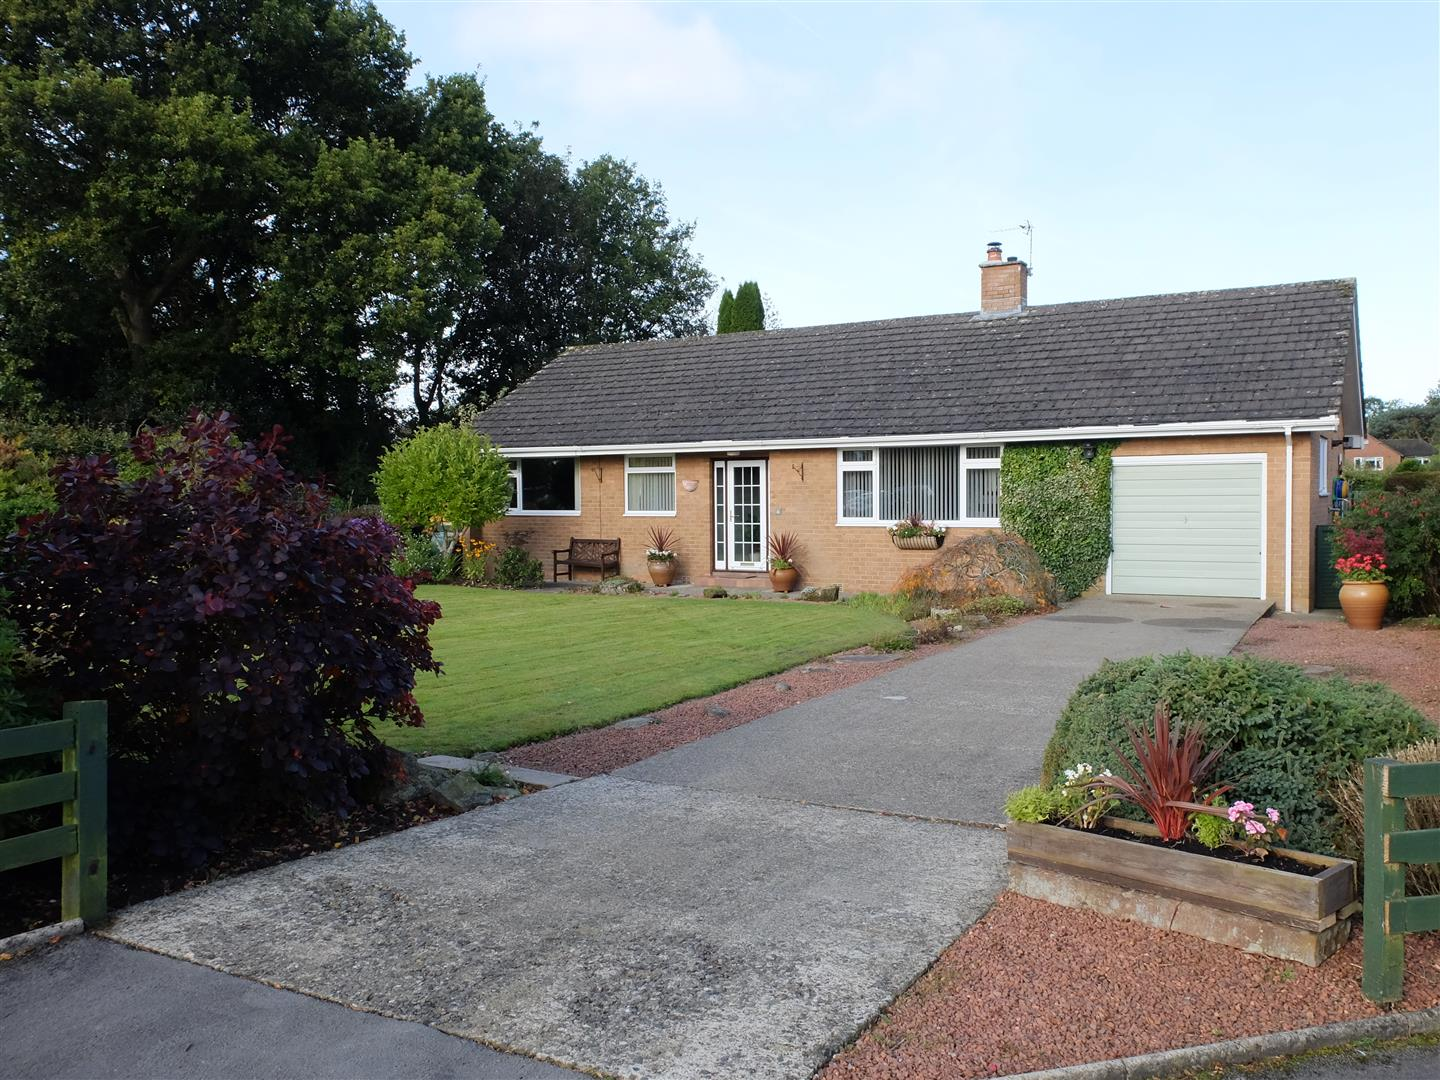 Berberis, 4 Cairn Wood Brampton 3 Bedrooms Bungalow - Detached For Sale